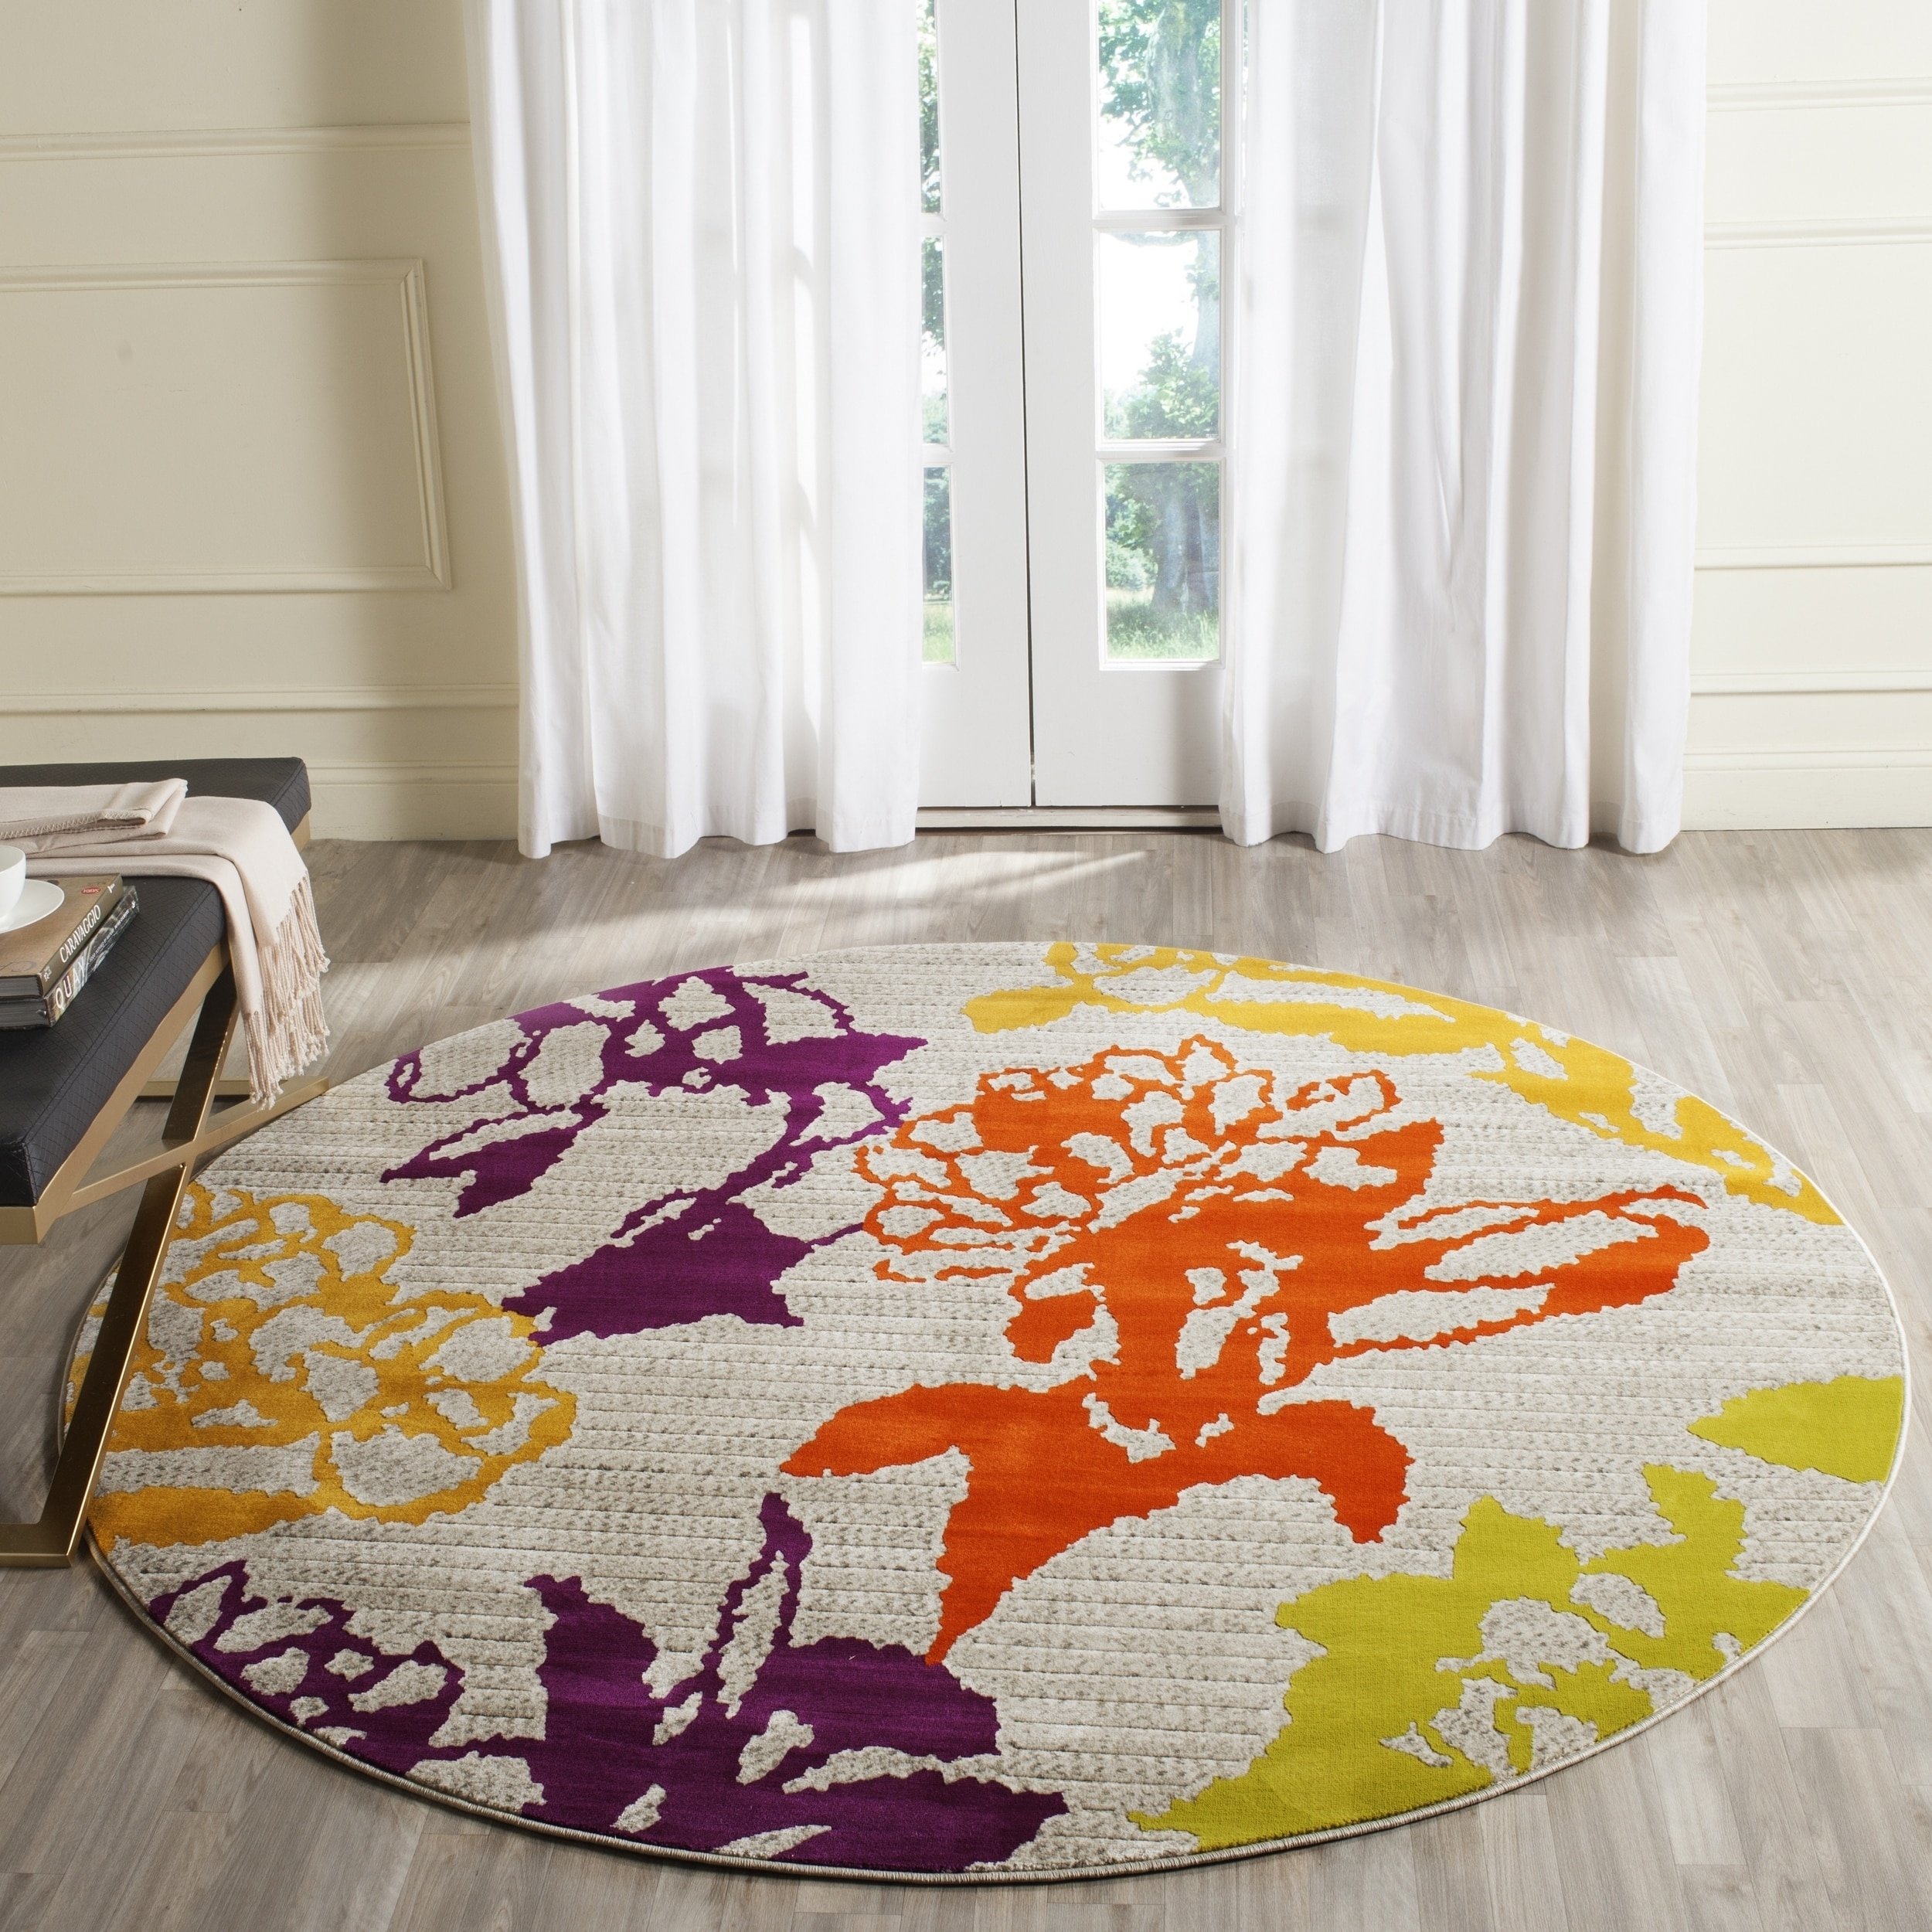 Safavieh Porcello Alban Abstract Floral Area Rug or Runner